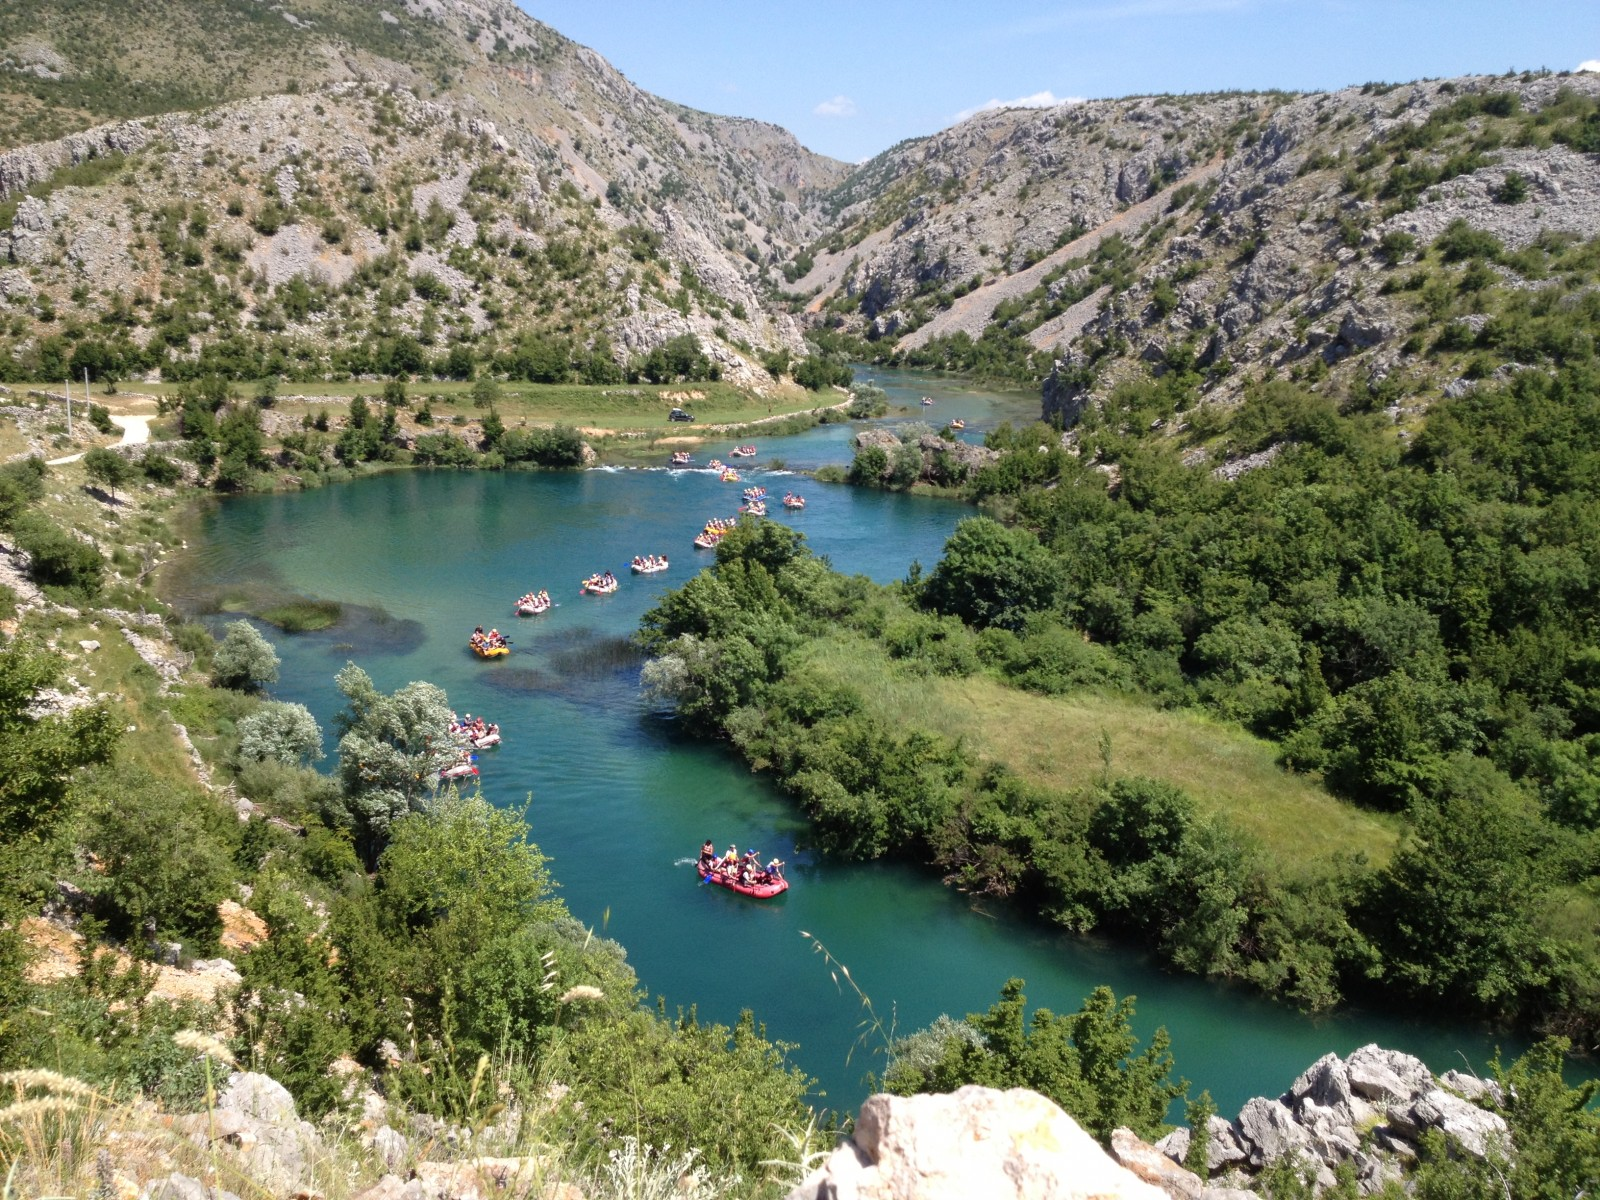 Rafting/kayaking on Zrmanja – the green beauty cut into mountain